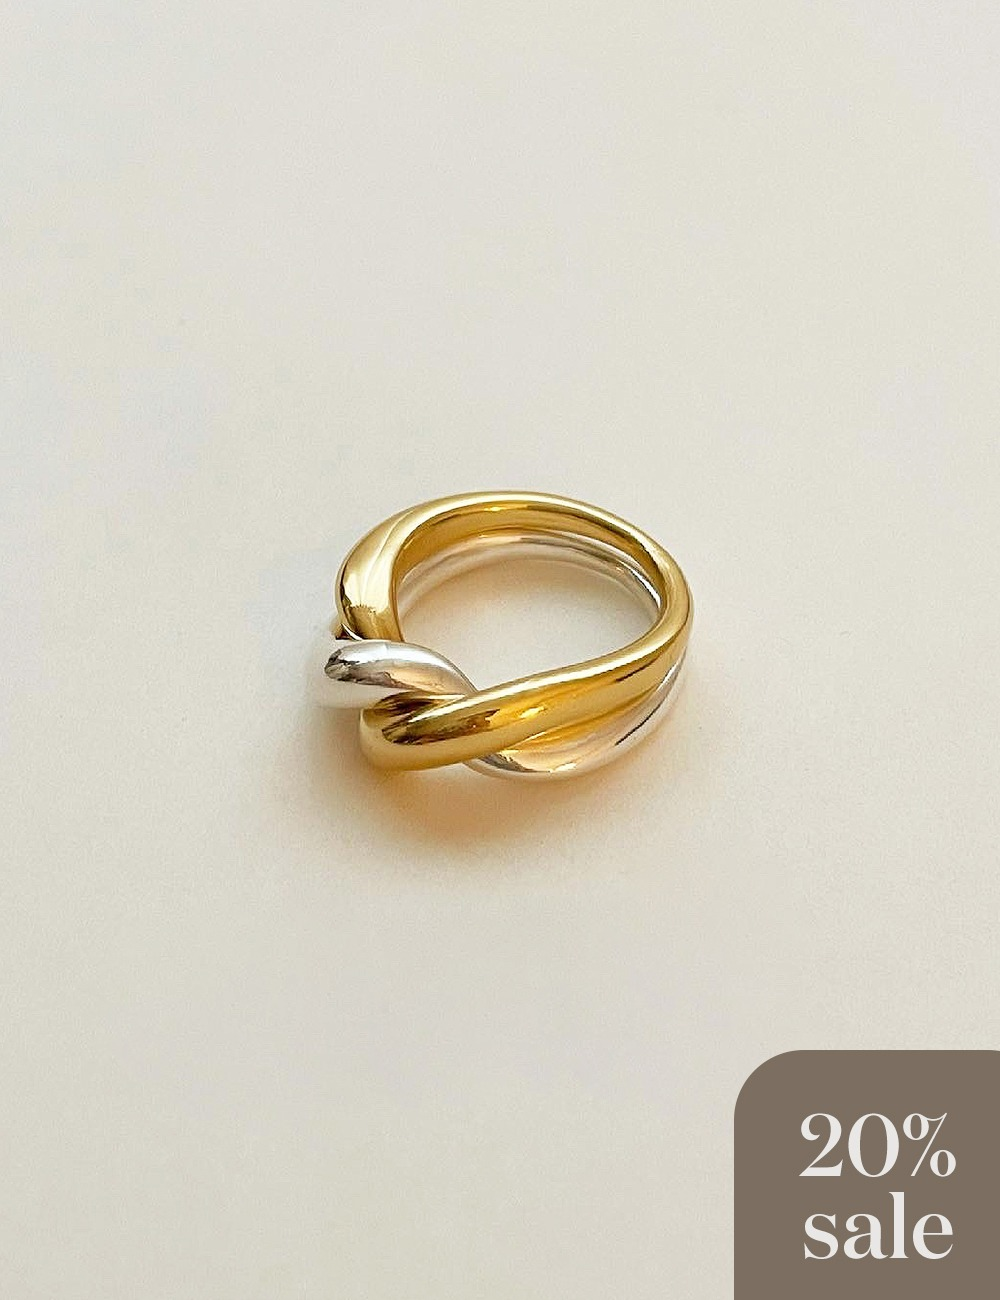 (silver925) Combi chain bold ring